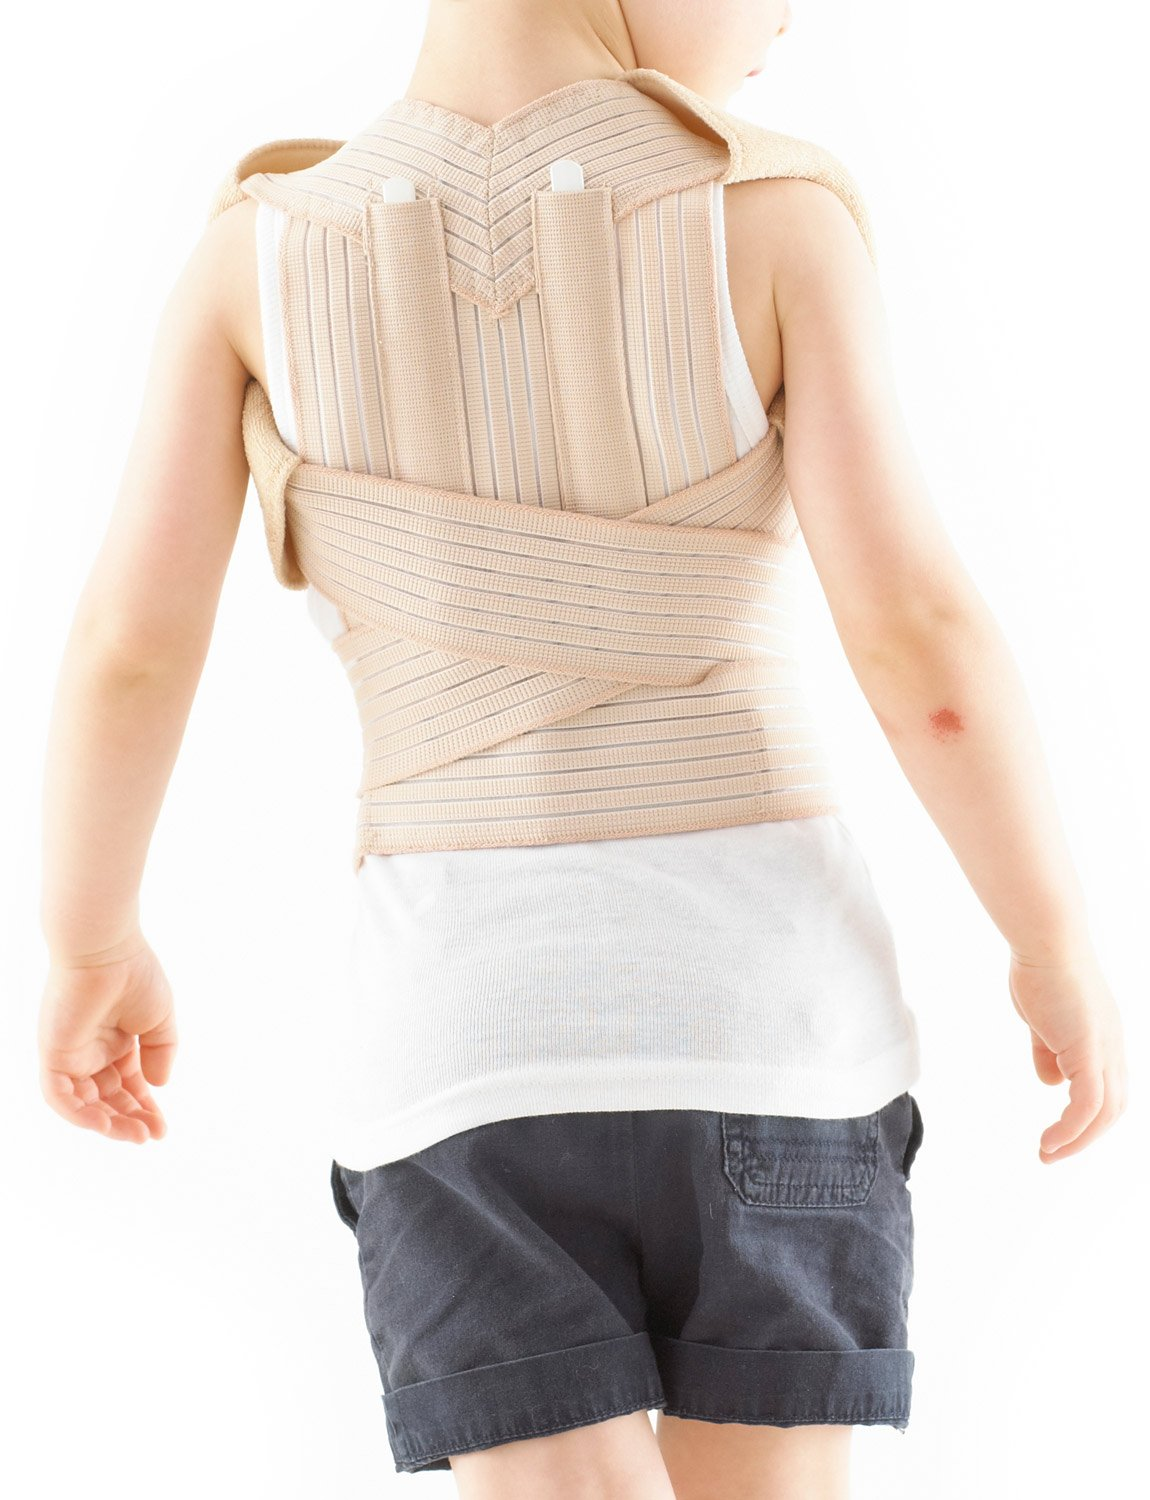 NEO G Kids Clavicle Brace - Beige - Medical Grade Quality, pre/post operative aid HELPS with early juvenile kyphosis, rounded or slumped shoulders, provides additional back support - ONE SIZE Unisex